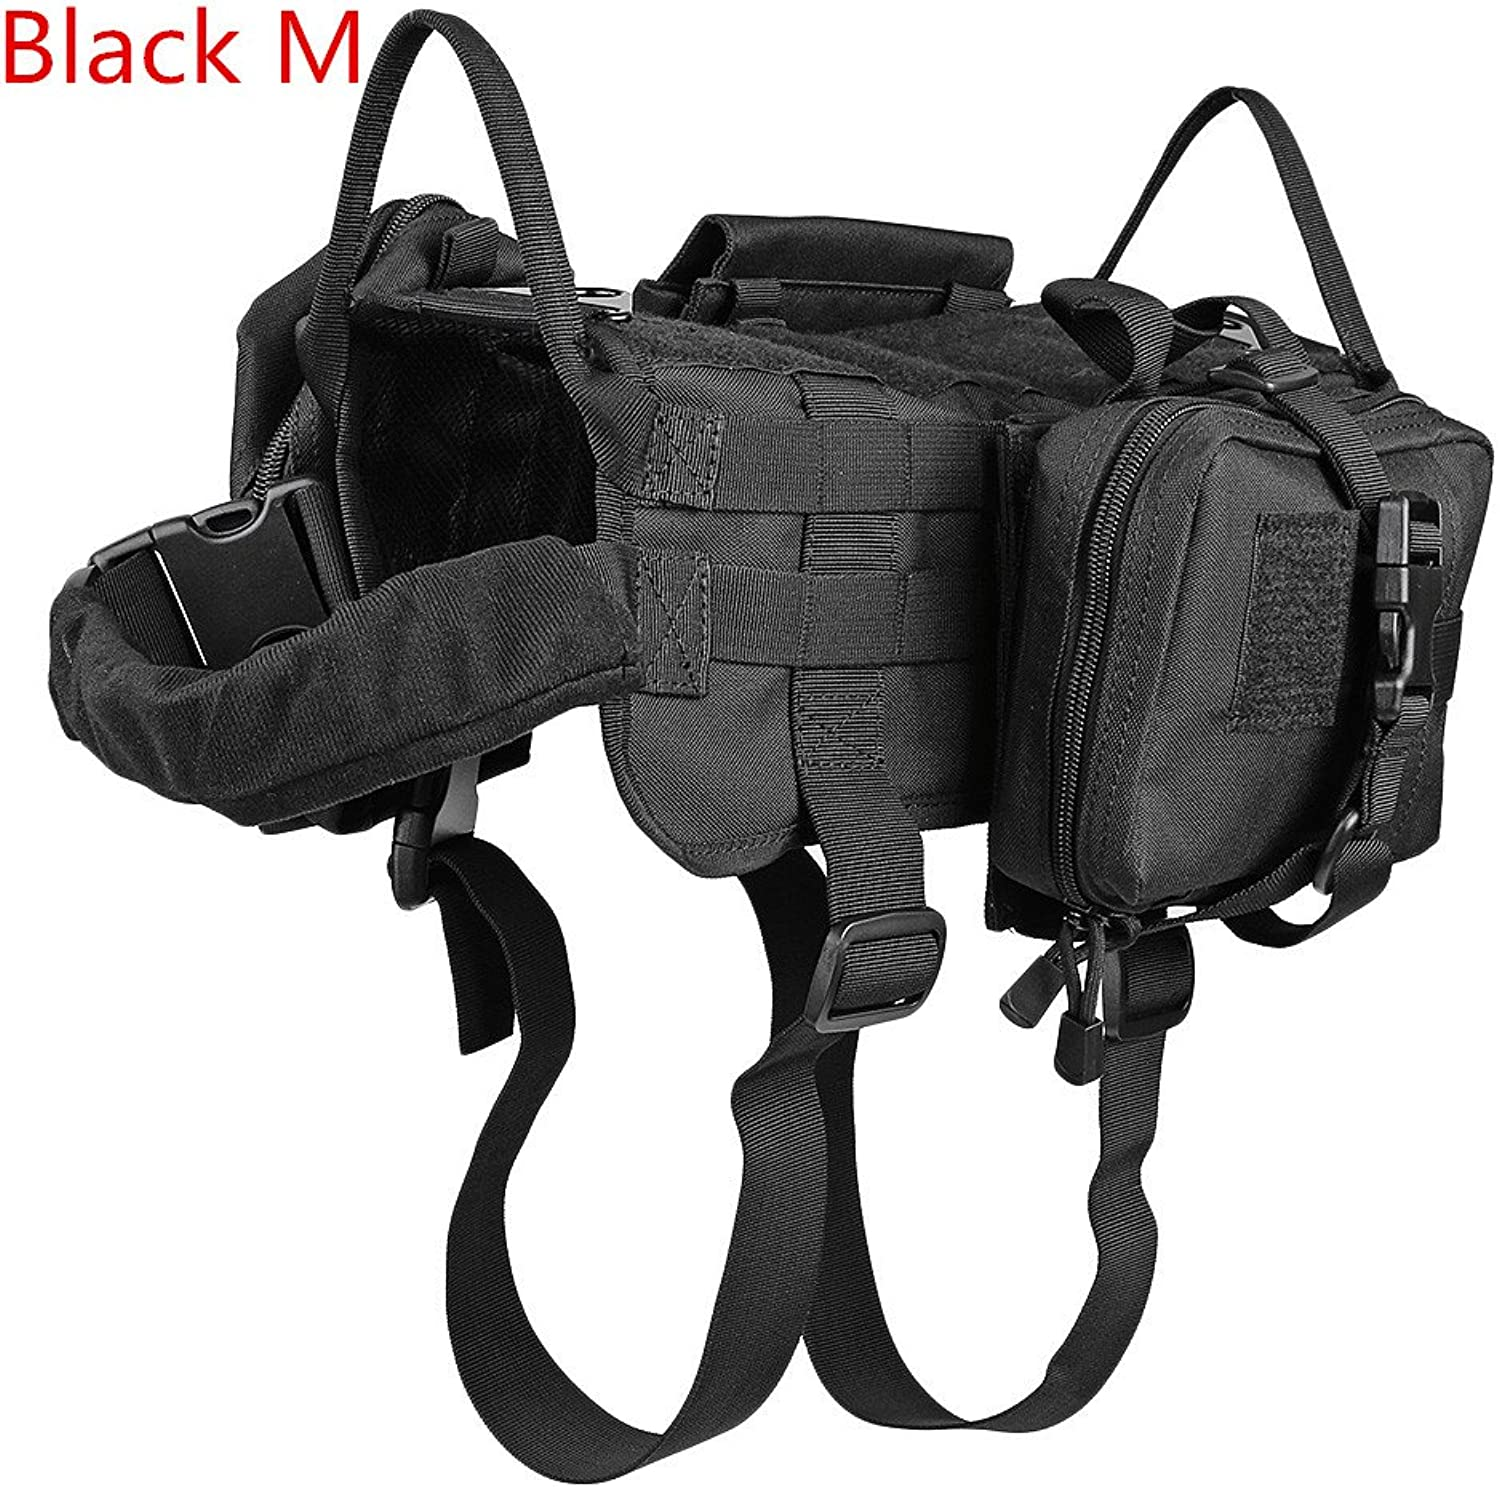 Tactical Dog Military Training Molle Vest Harness with 3 Detachable Pouches